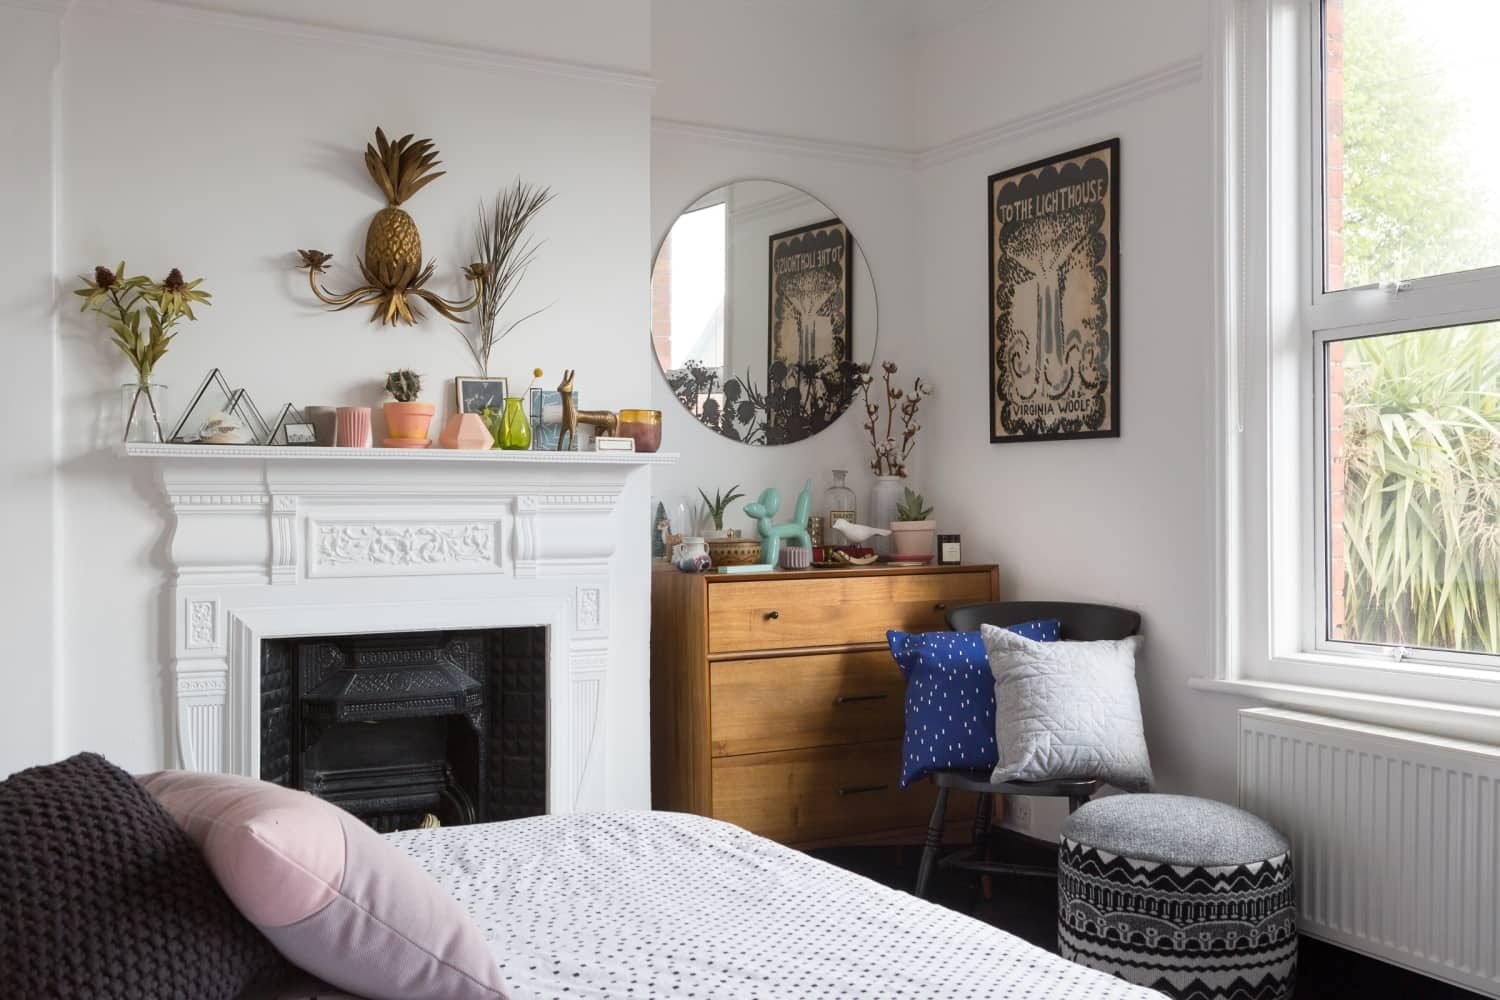 Best Small Bedroom Ideas 7 Smart Ways To Get More Storage In With Pictures